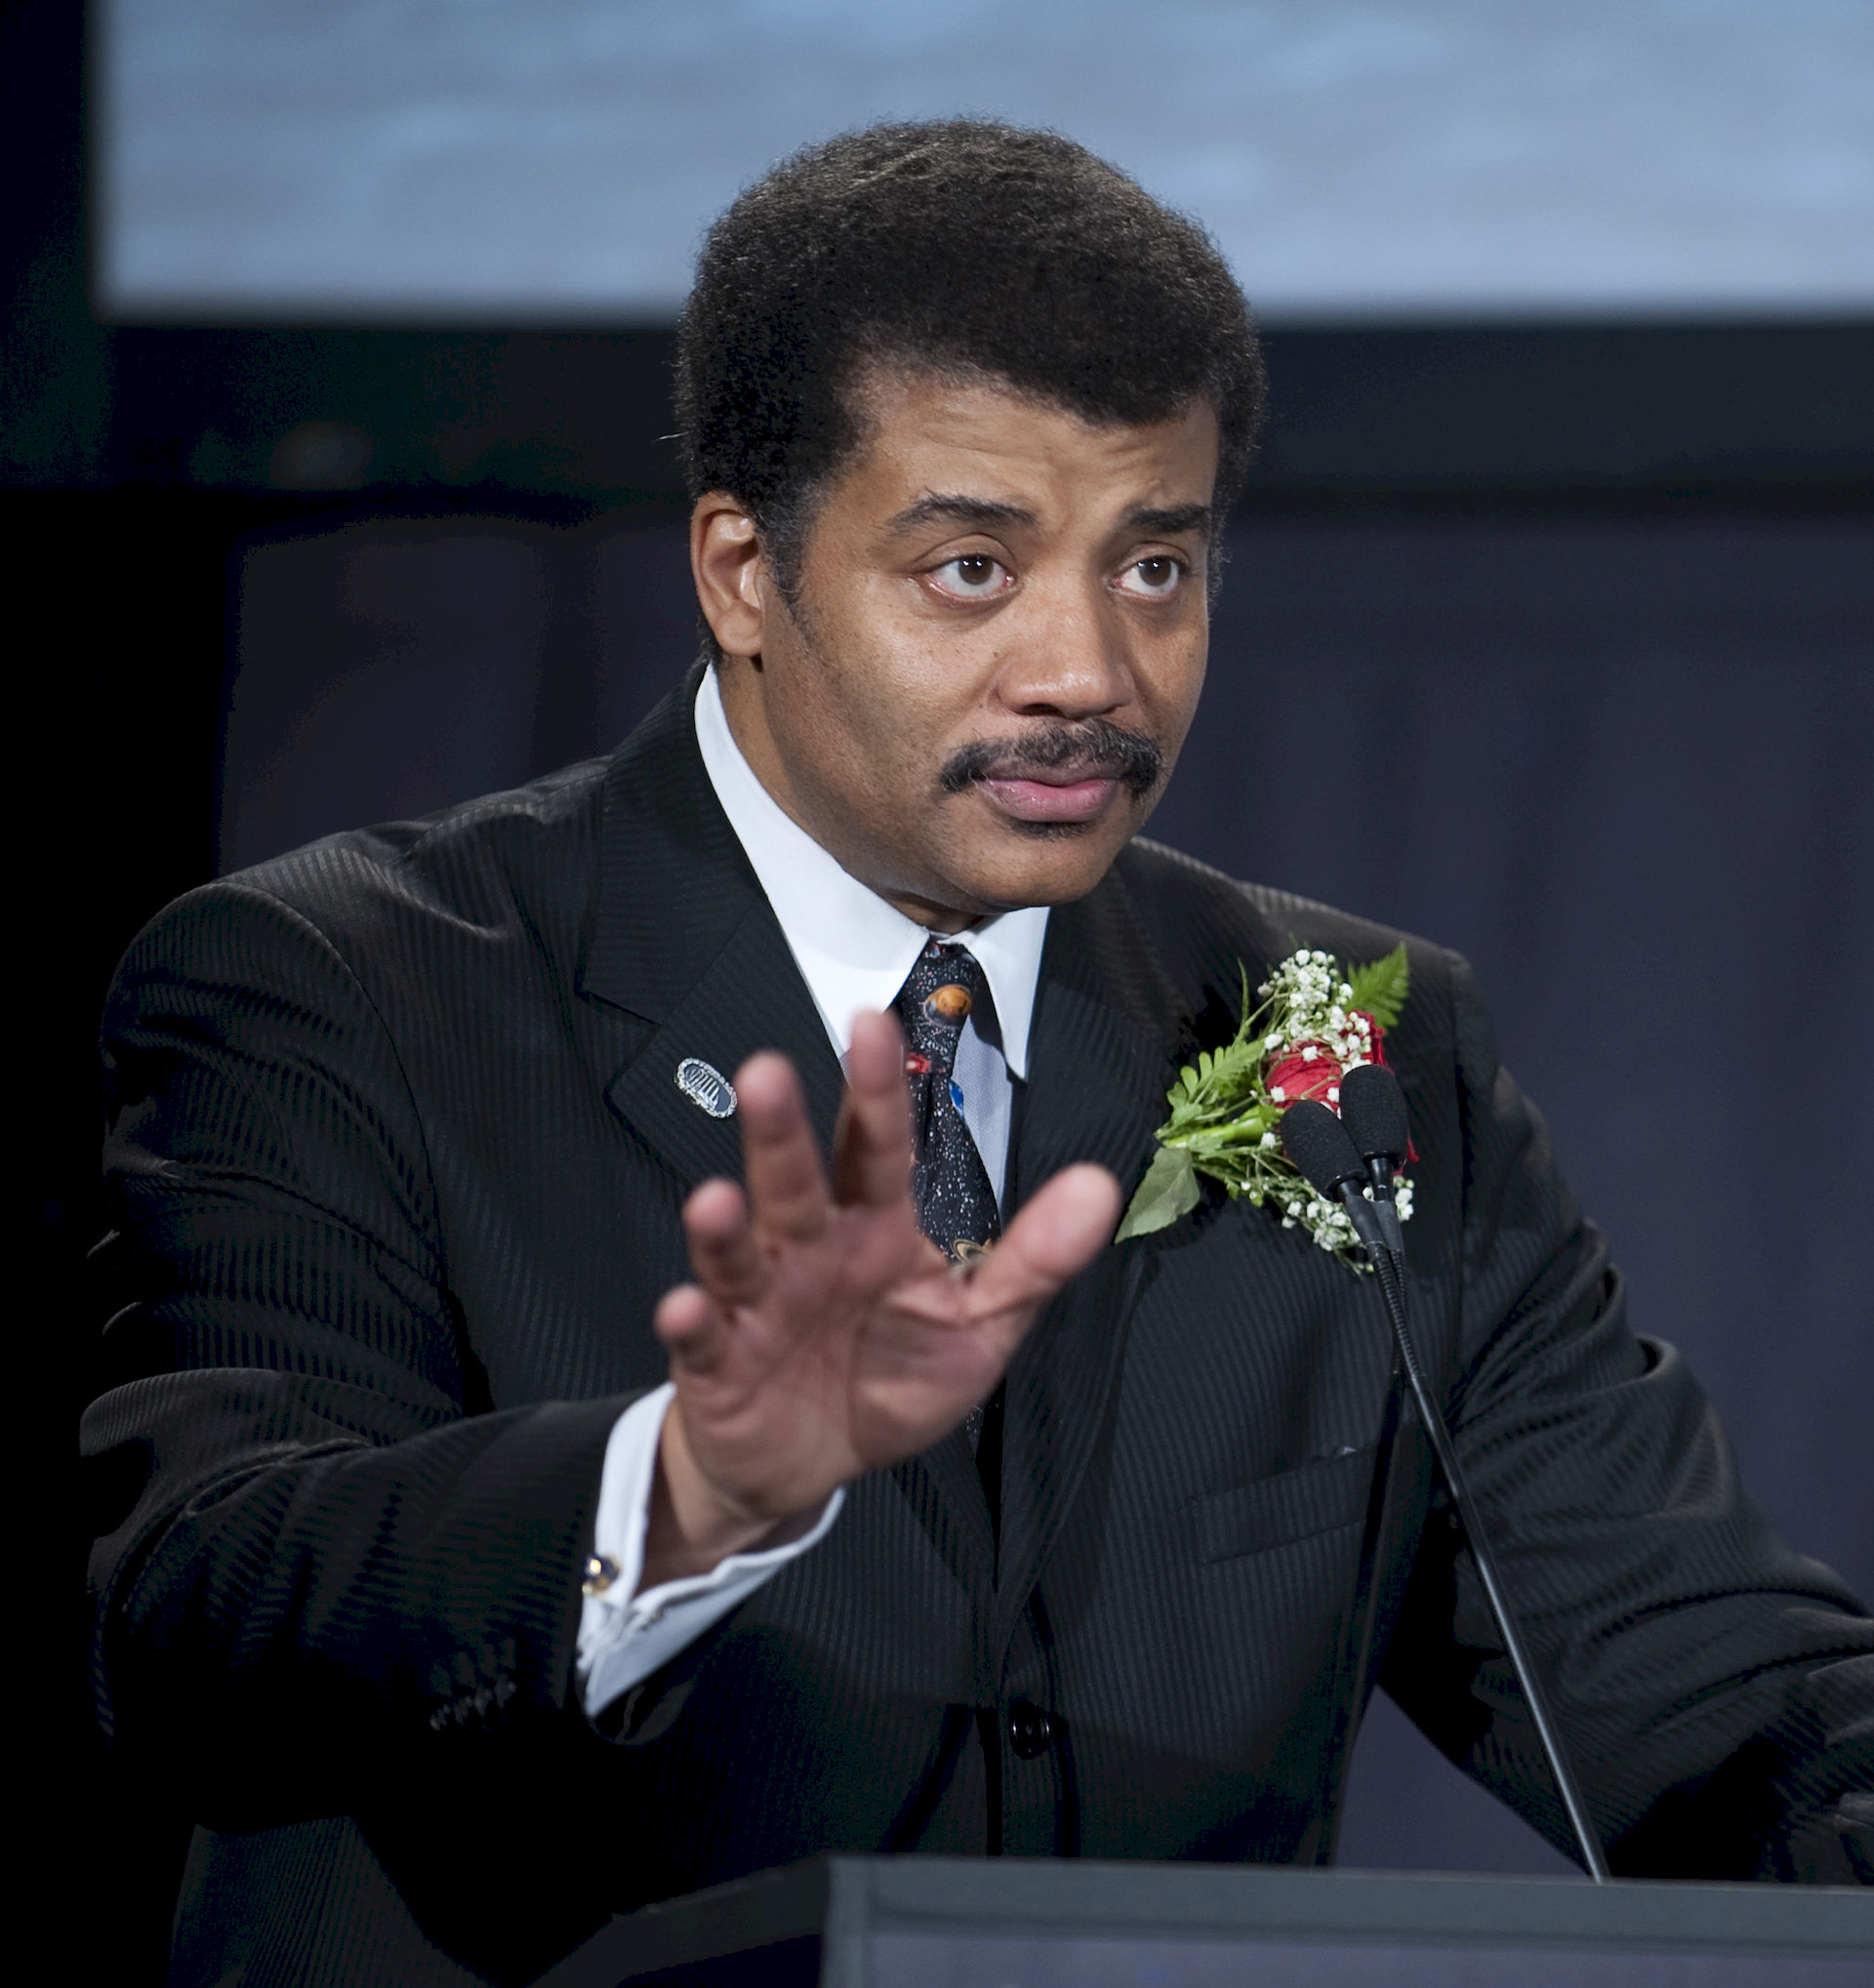 Photo of Neil deGrasse Tyson: American astrophysicist and science communicator